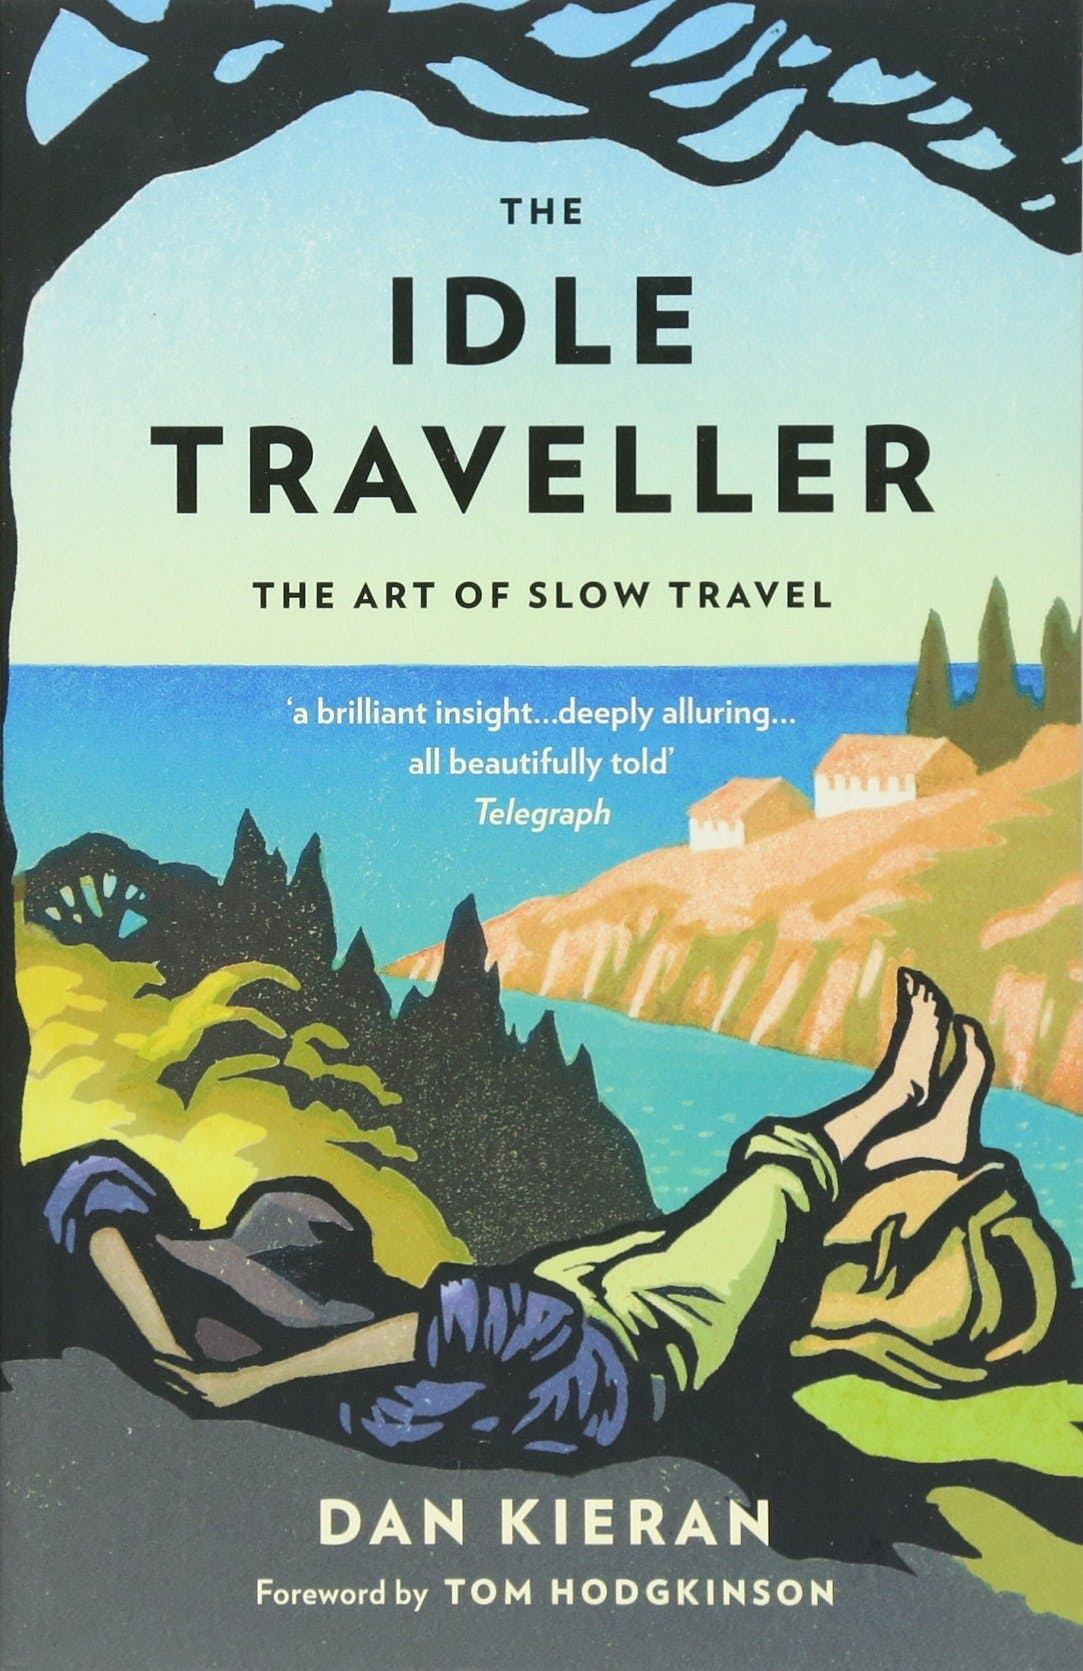 The Idle Traveller: The Art of Slow Travel by Dan Kieran